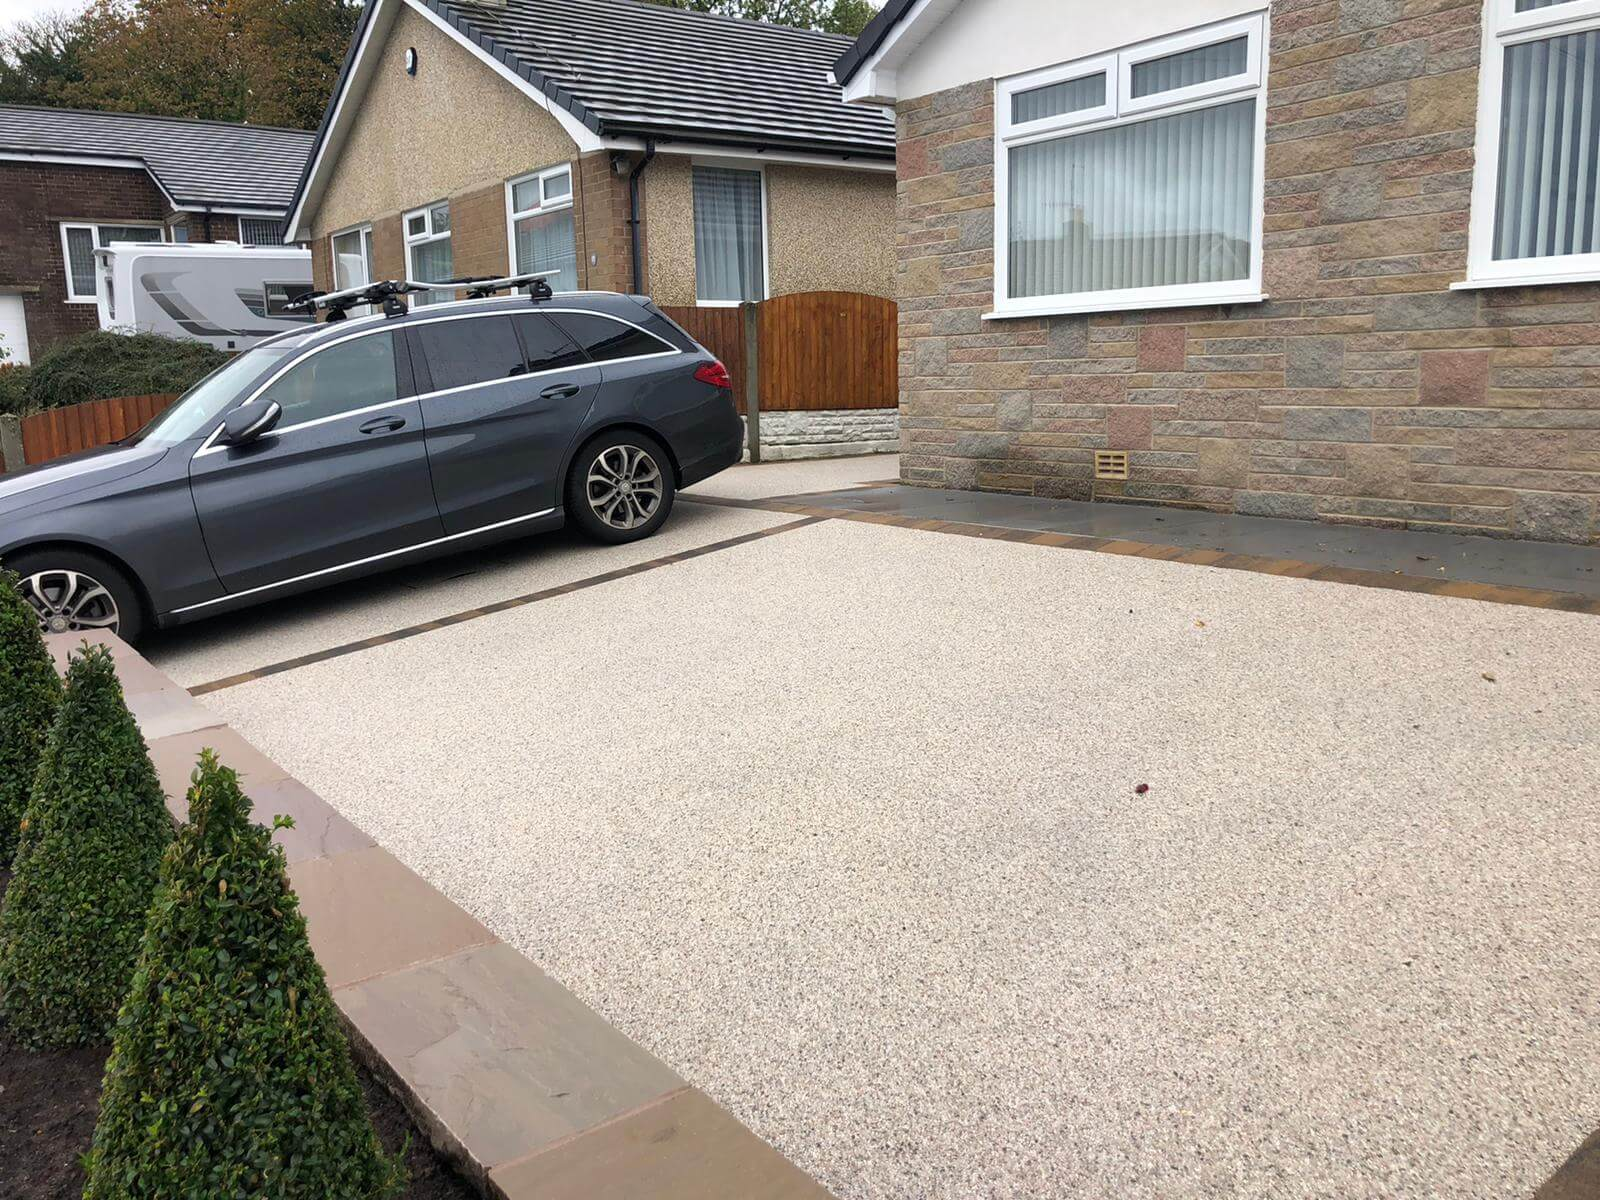 Another view of car on Resin Bound Driveway in Morecambe, Lancashire